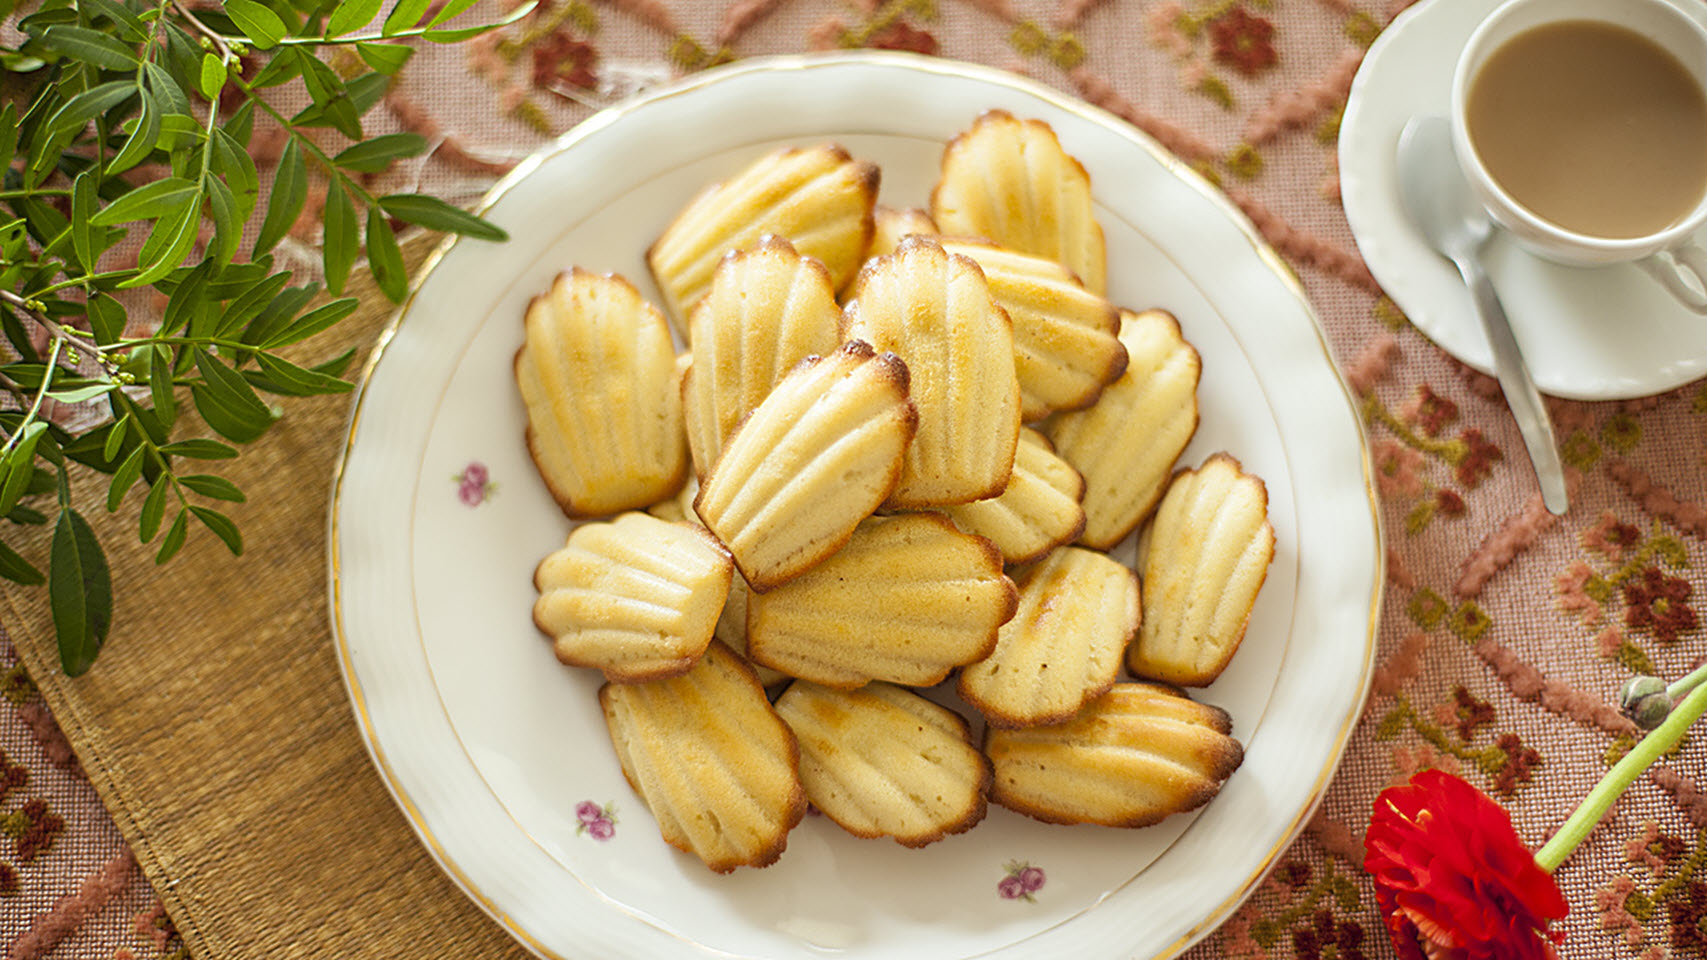 """With accurate baking times and temperatures, this foolproof recipe shows you how to bake a batch of classic French Madeleine cookies. You can use metal molds instead of silicone molds, if you prefer - grease well with butter and dust with flour. """"Wow"""", says home cook Kaththee1, """"these came out perfectly my very first try."""""""